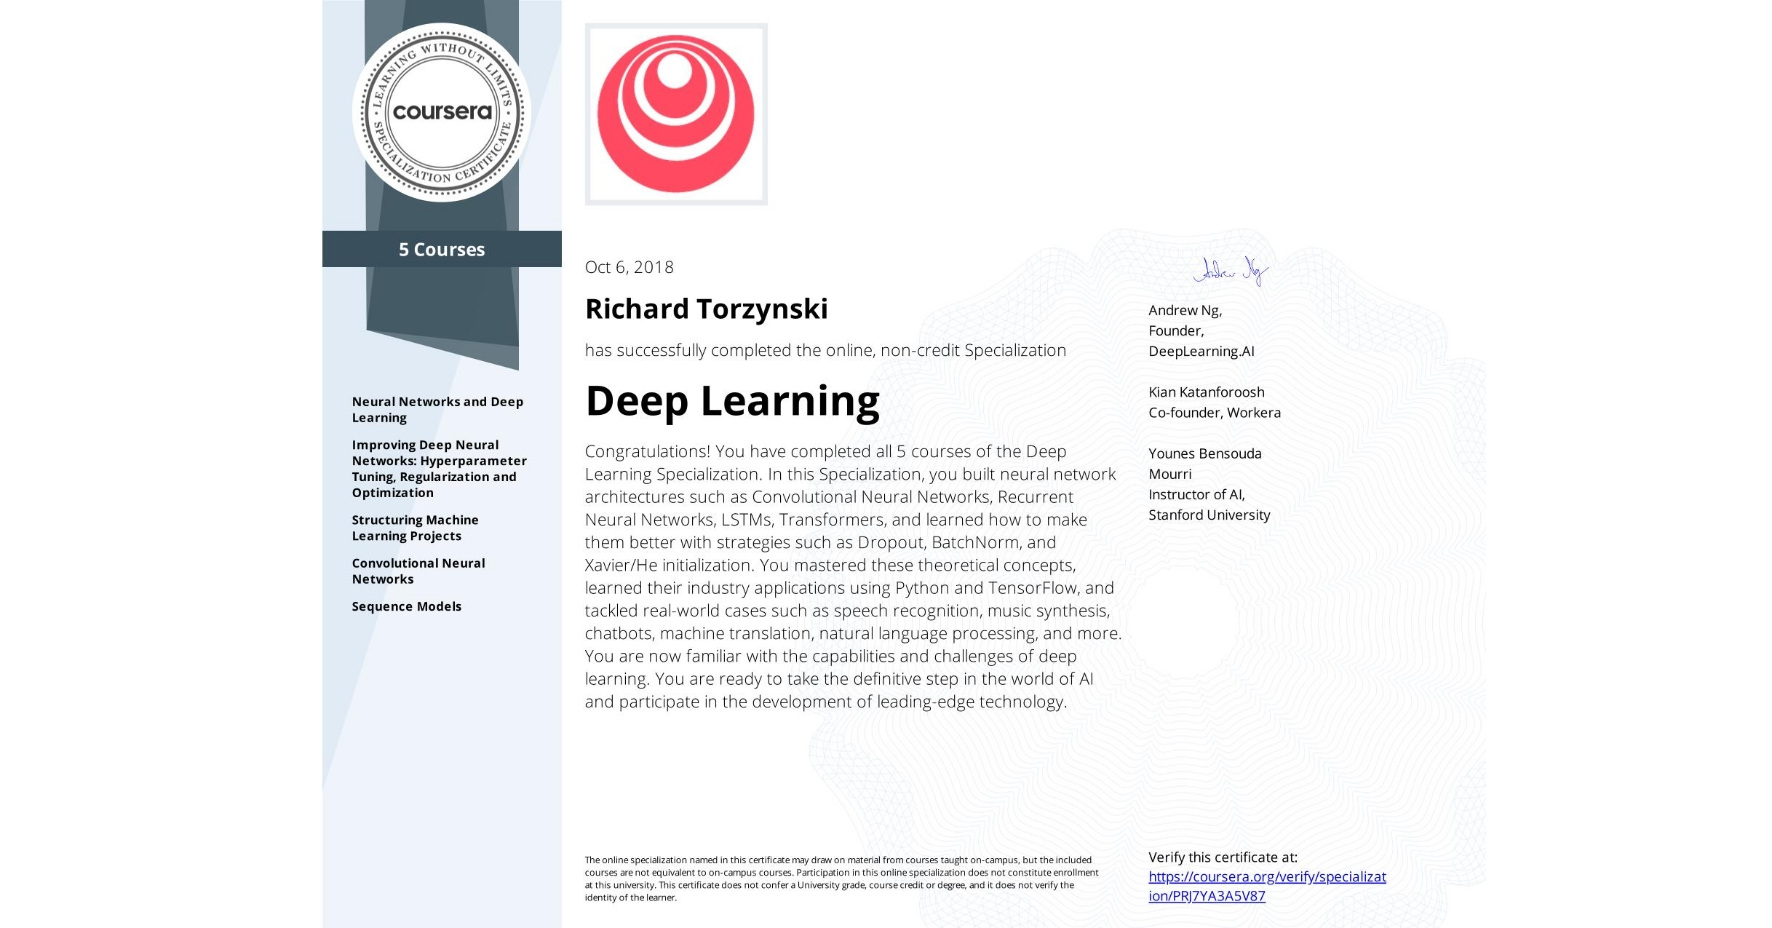 View certificate for Richard Torzynski, Deep Learning, offered through Coursera. The Deep Learning Specialization is designed to prepare learners to participate in the development of cutting-edge AI technology, and to understand the capability, the challenges, and the consequences of the rise of deep learning. Through five interconnected courses, learners develop a profound knowledge of the hottest AI algorithms, mastering deep learning from its foundations (neural networks) to its industry applications (Computer Vision, Natural Language Processing, Speech Recognition, etc.).